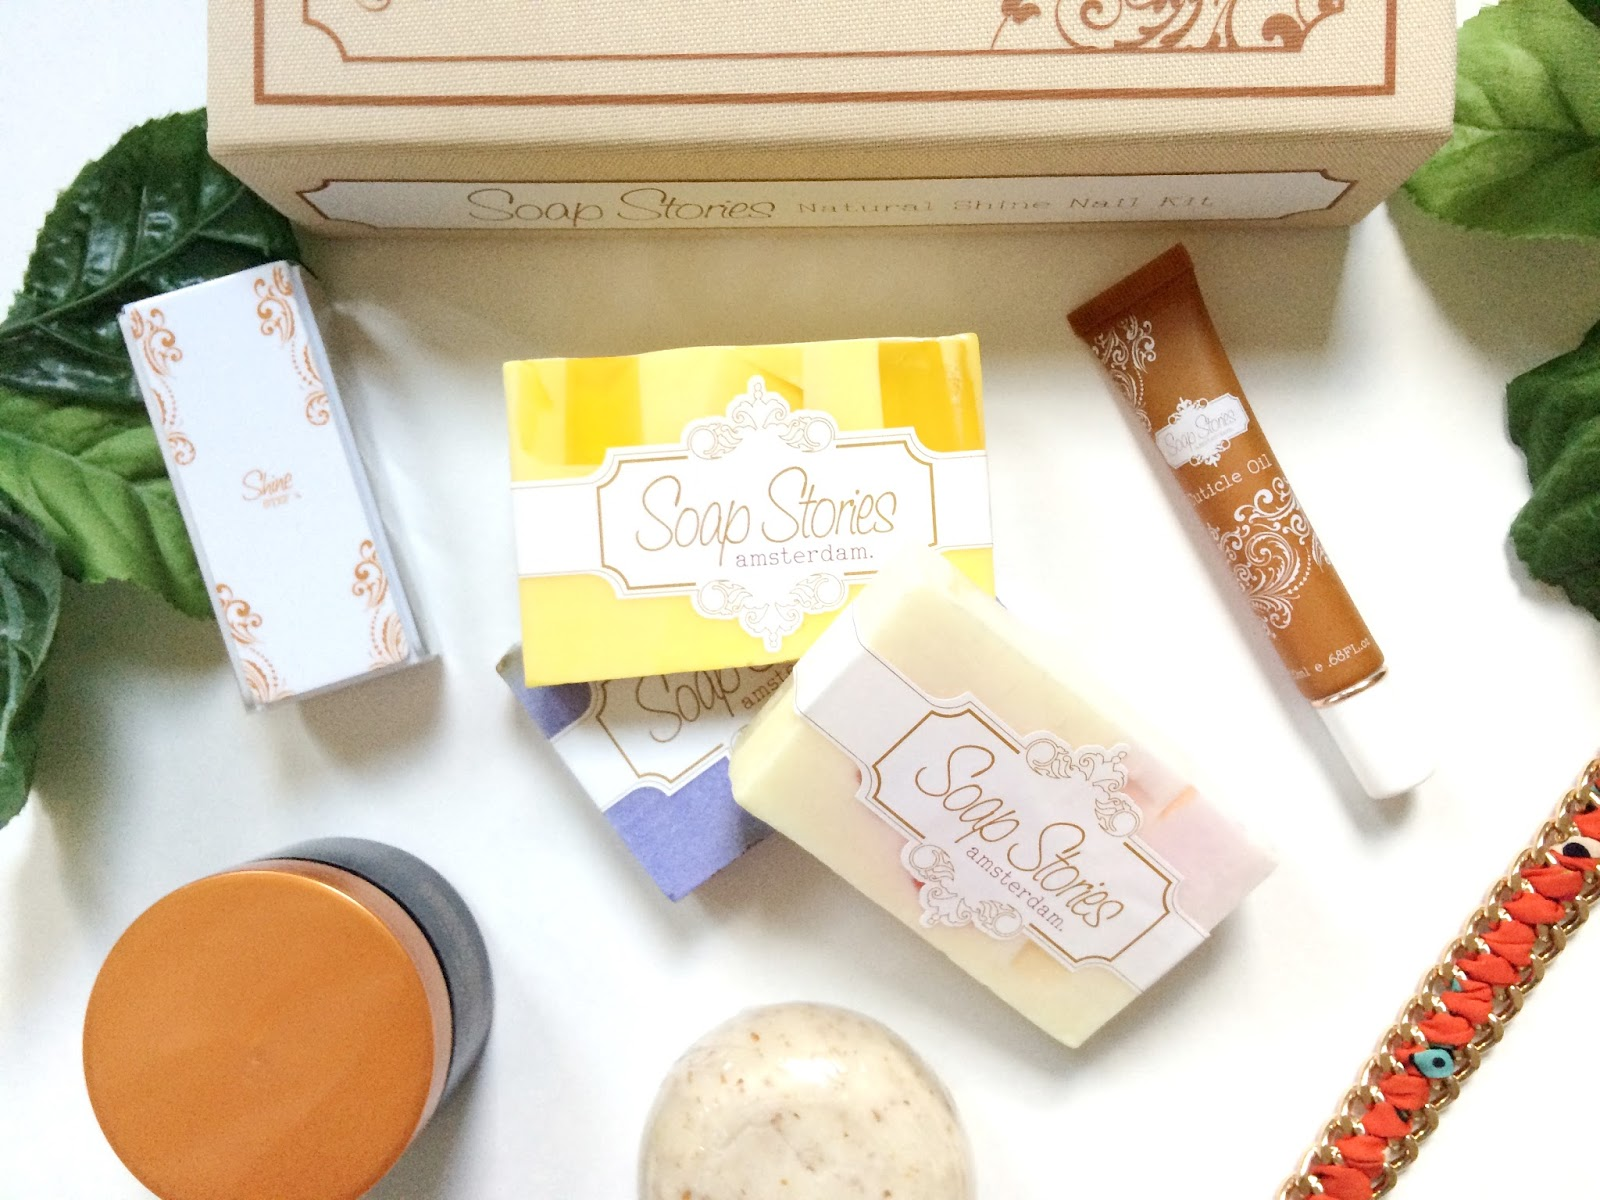 Review Of Skincare And Nail Products From Soap Stories